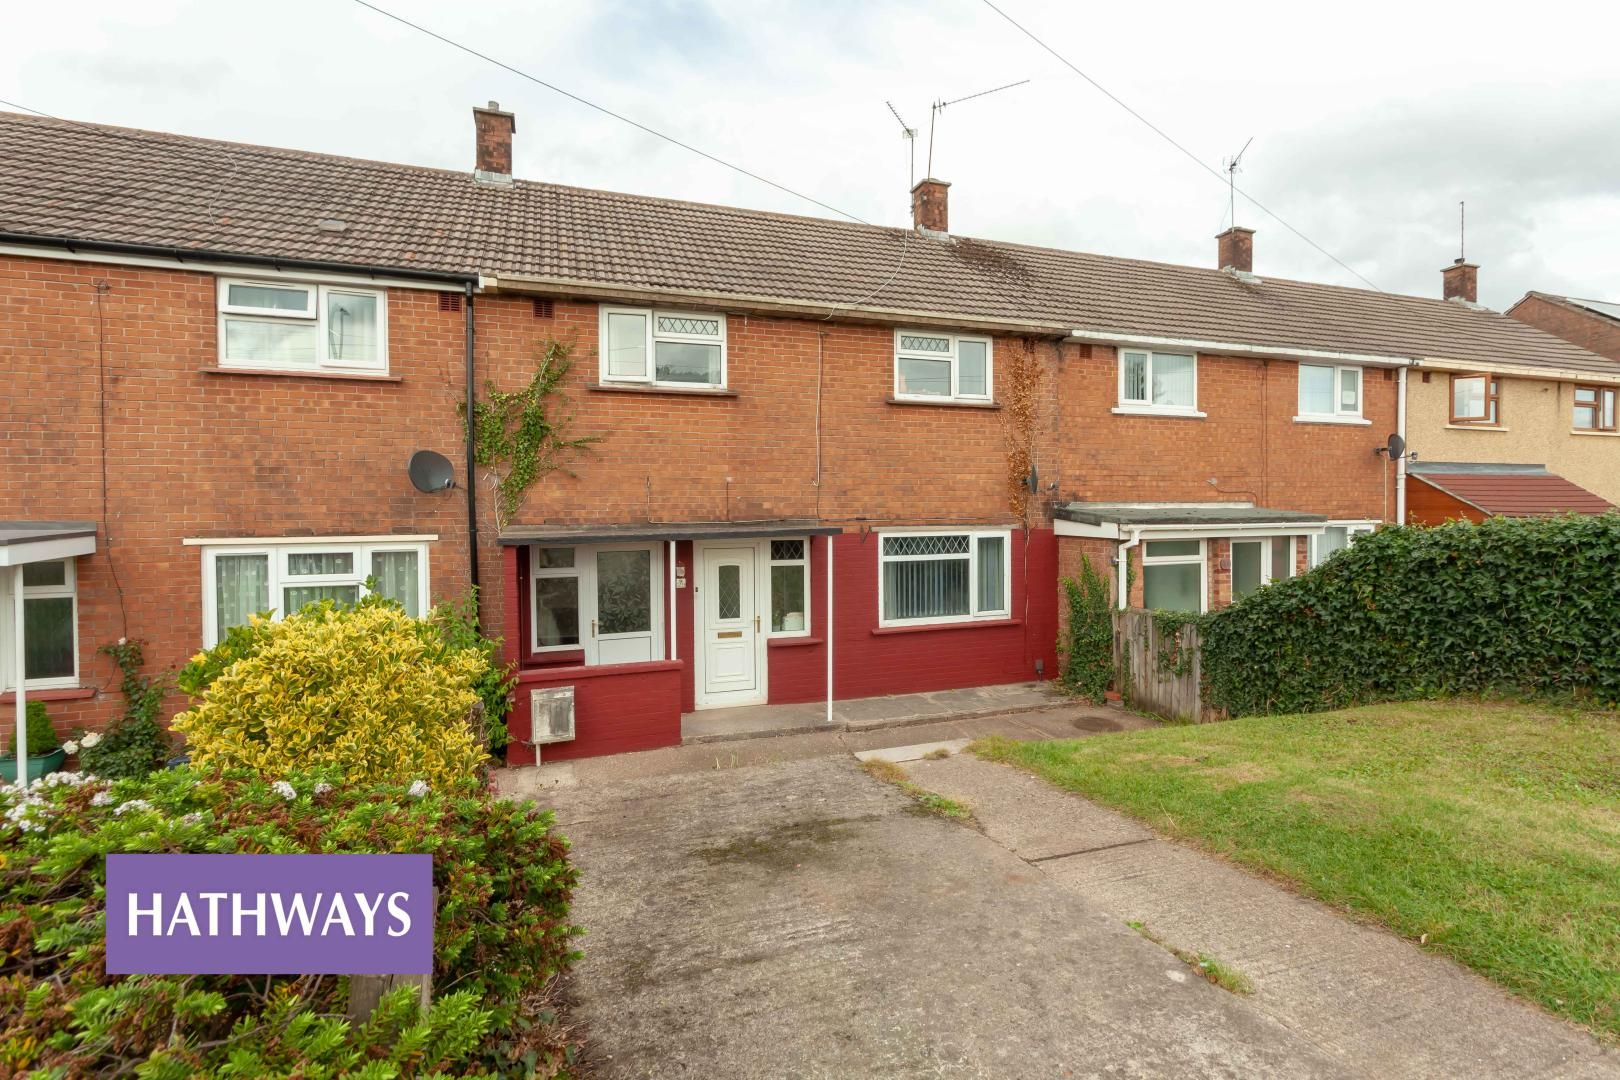 3 bed house for sale in Worcester Crescent, NP19